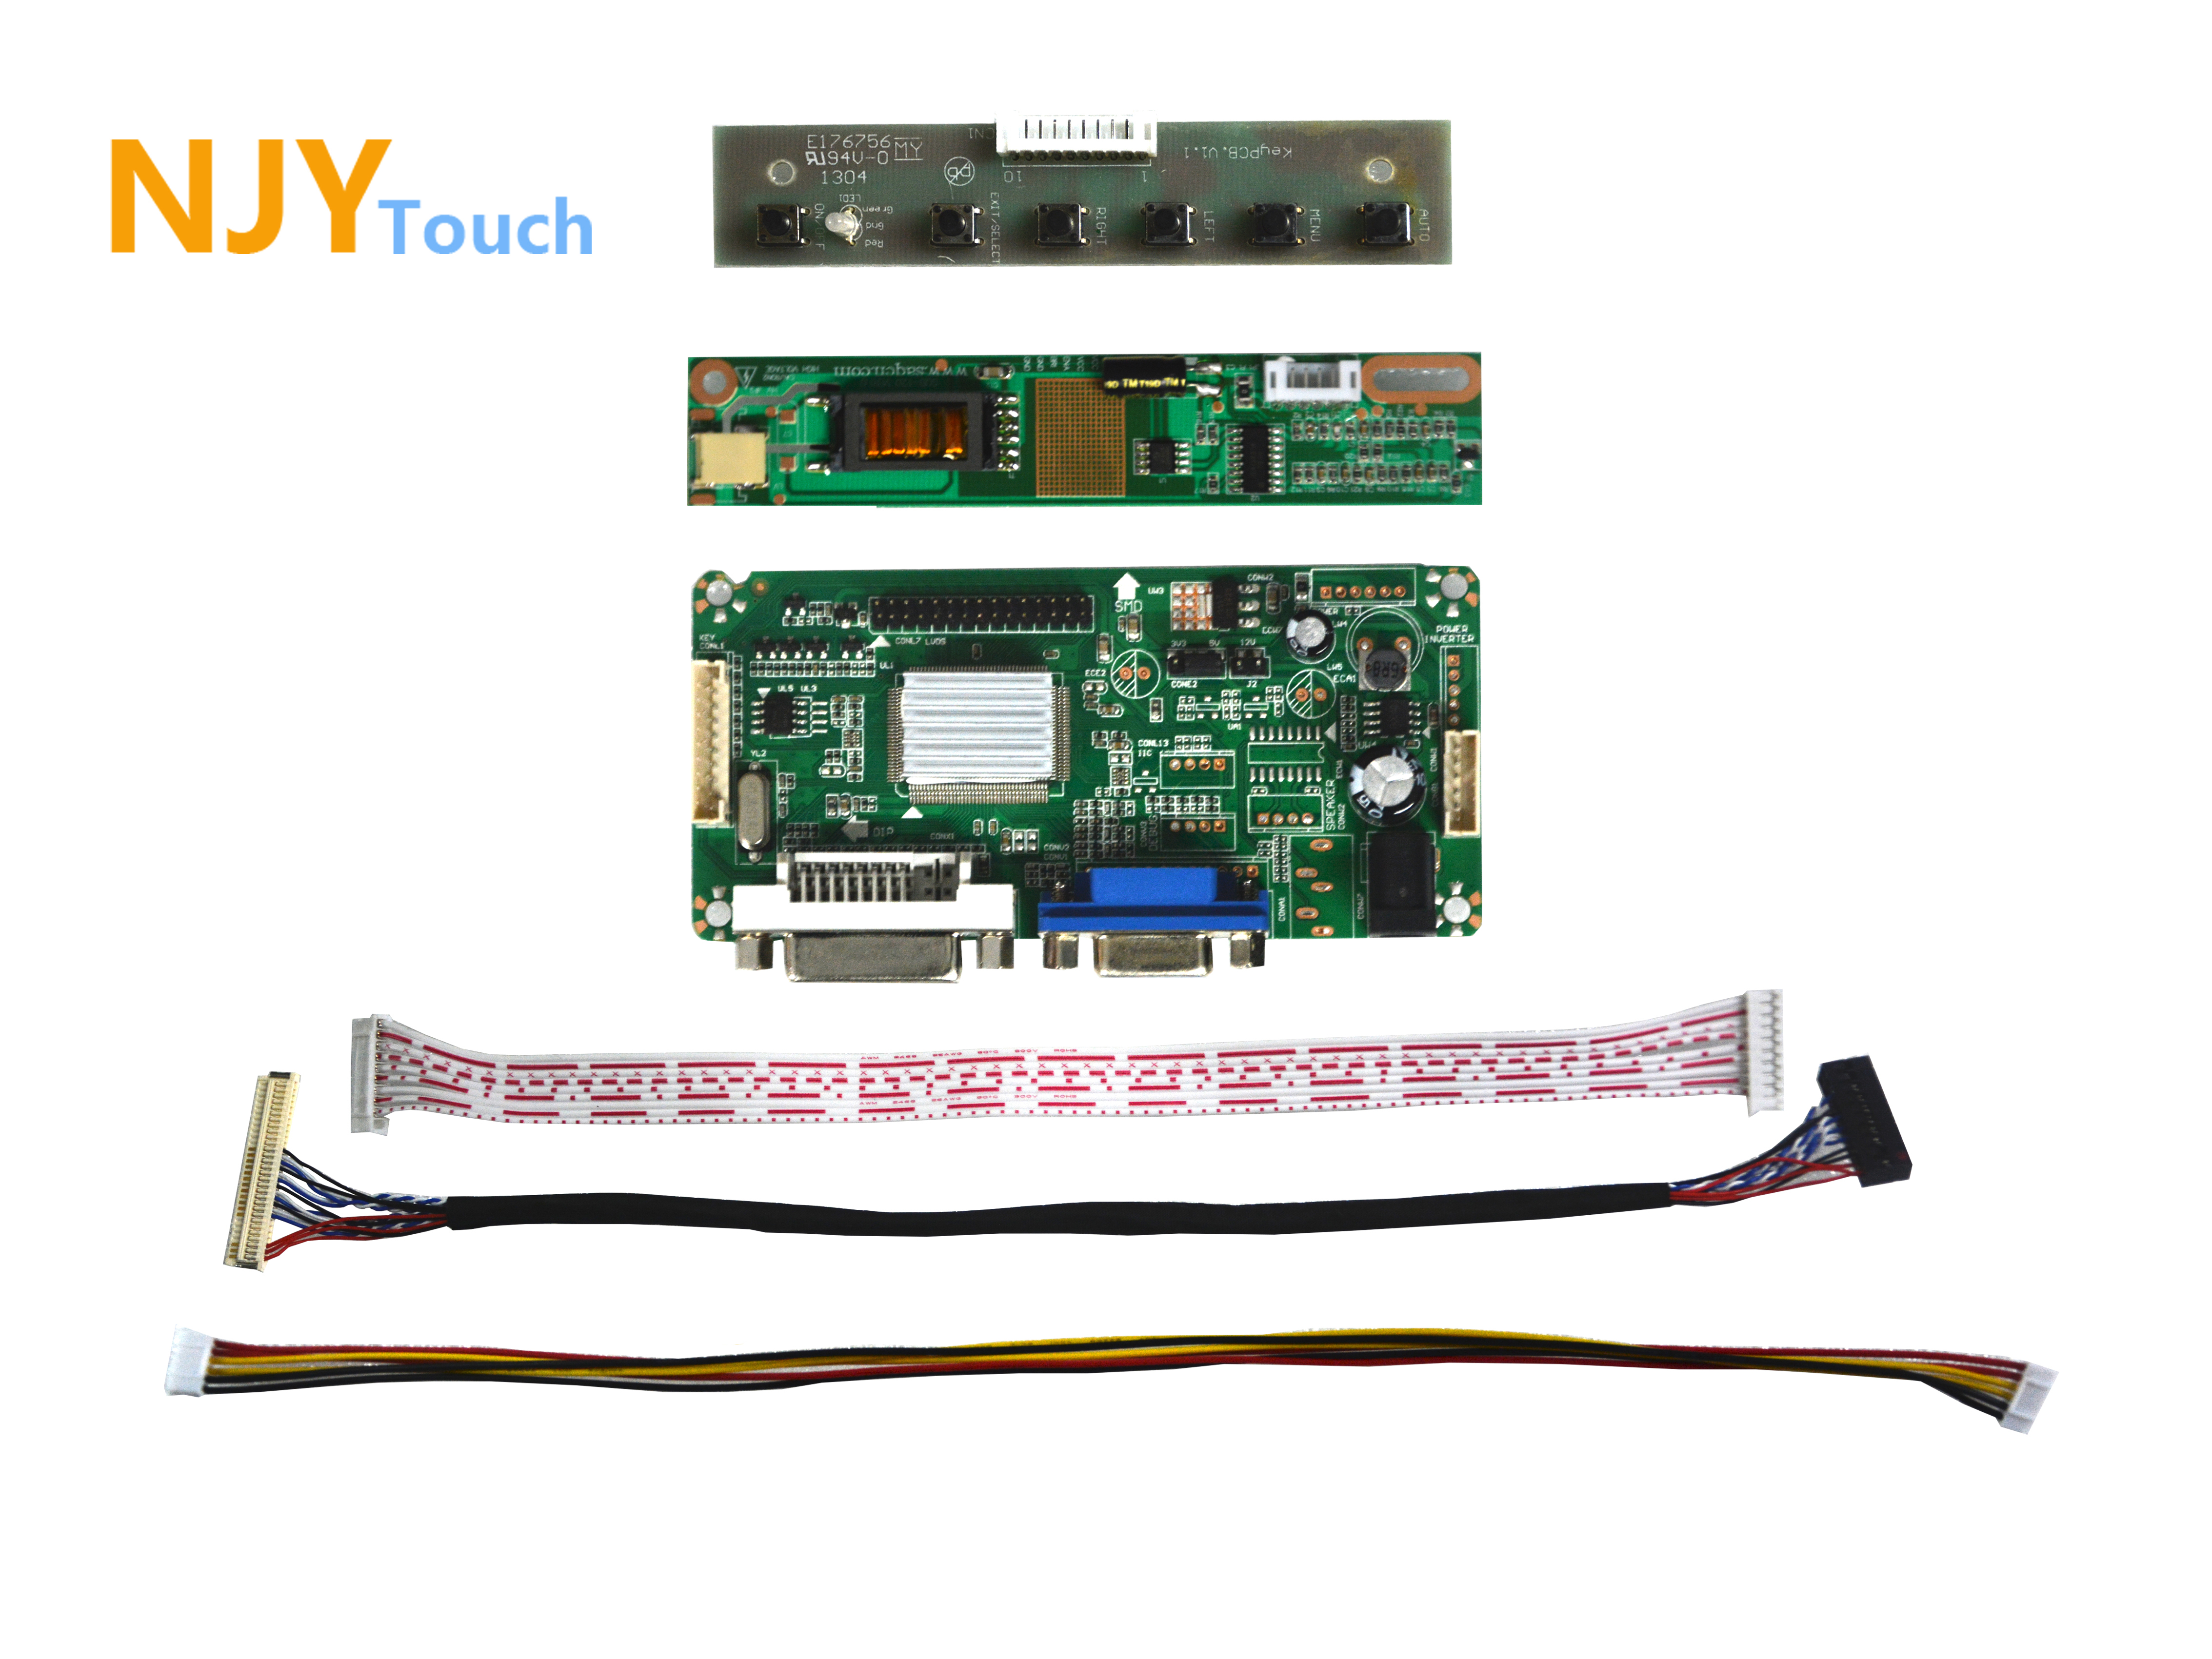 NJYTouch LM.R61 DVI VGA LCD Controller Driver Board For 15inch LP150X08-A5 P150X09-B2 1024x768 LED Screen